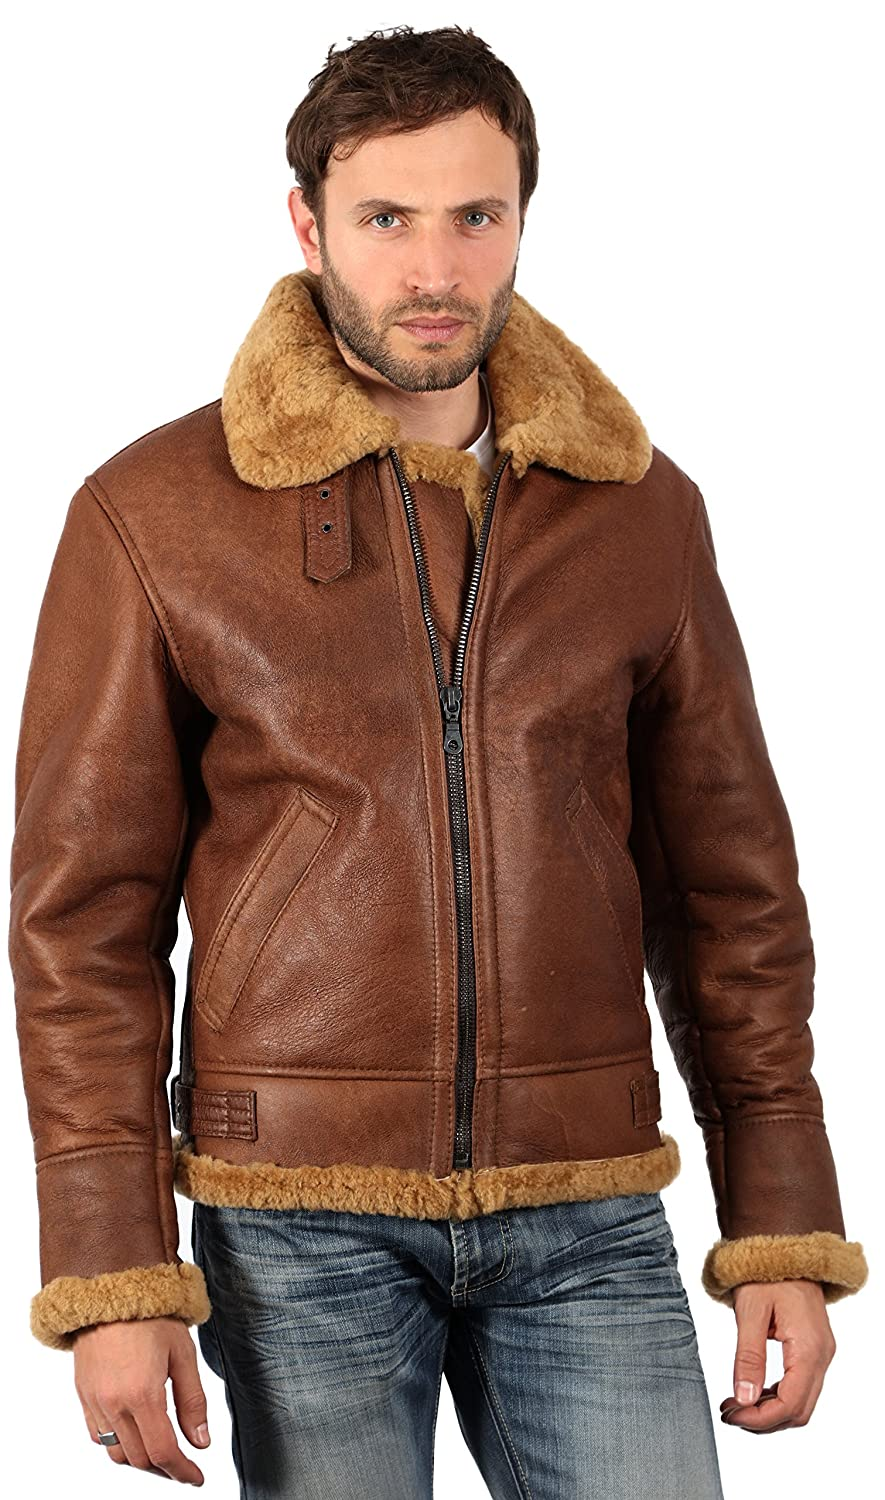 Men's Vintage Style Coats and Jackets Mens Brown B3 Aviator Sheepskin WW2 Bomber Leather Pilot Jacket £289.99 AT vintagedancer.com